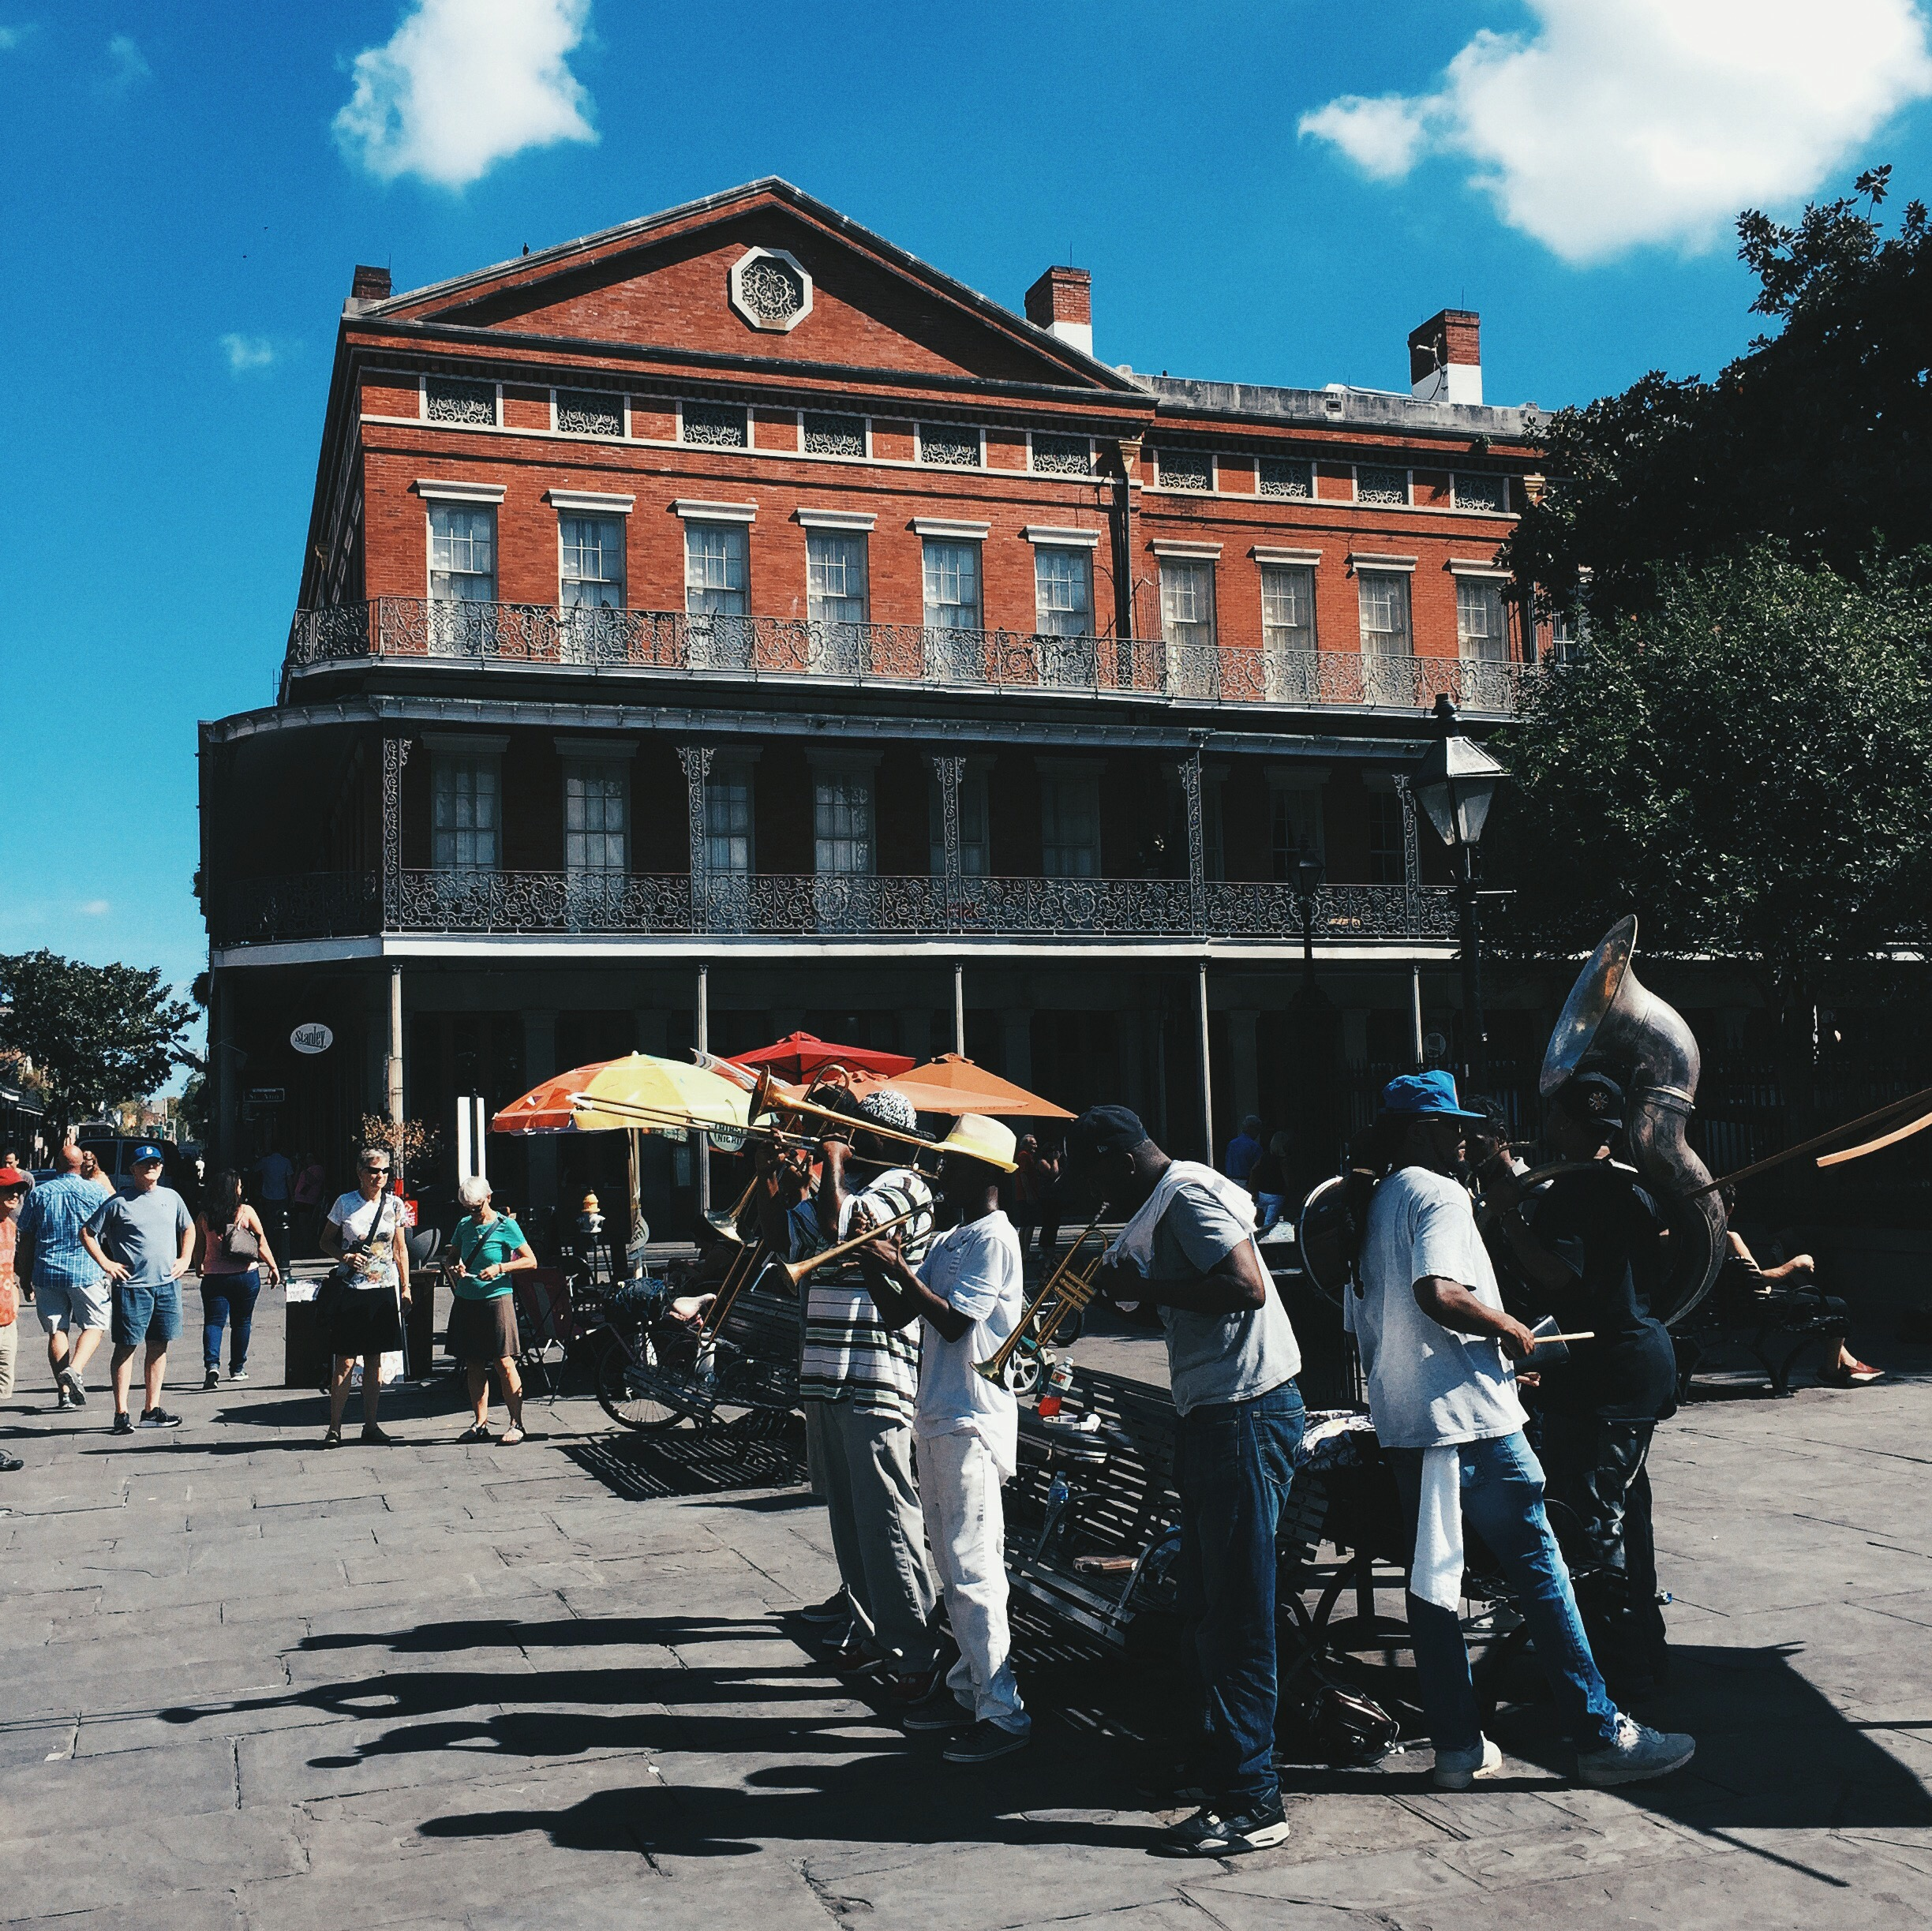 There would be random jazz bands on street corners throughout the French Quarter.